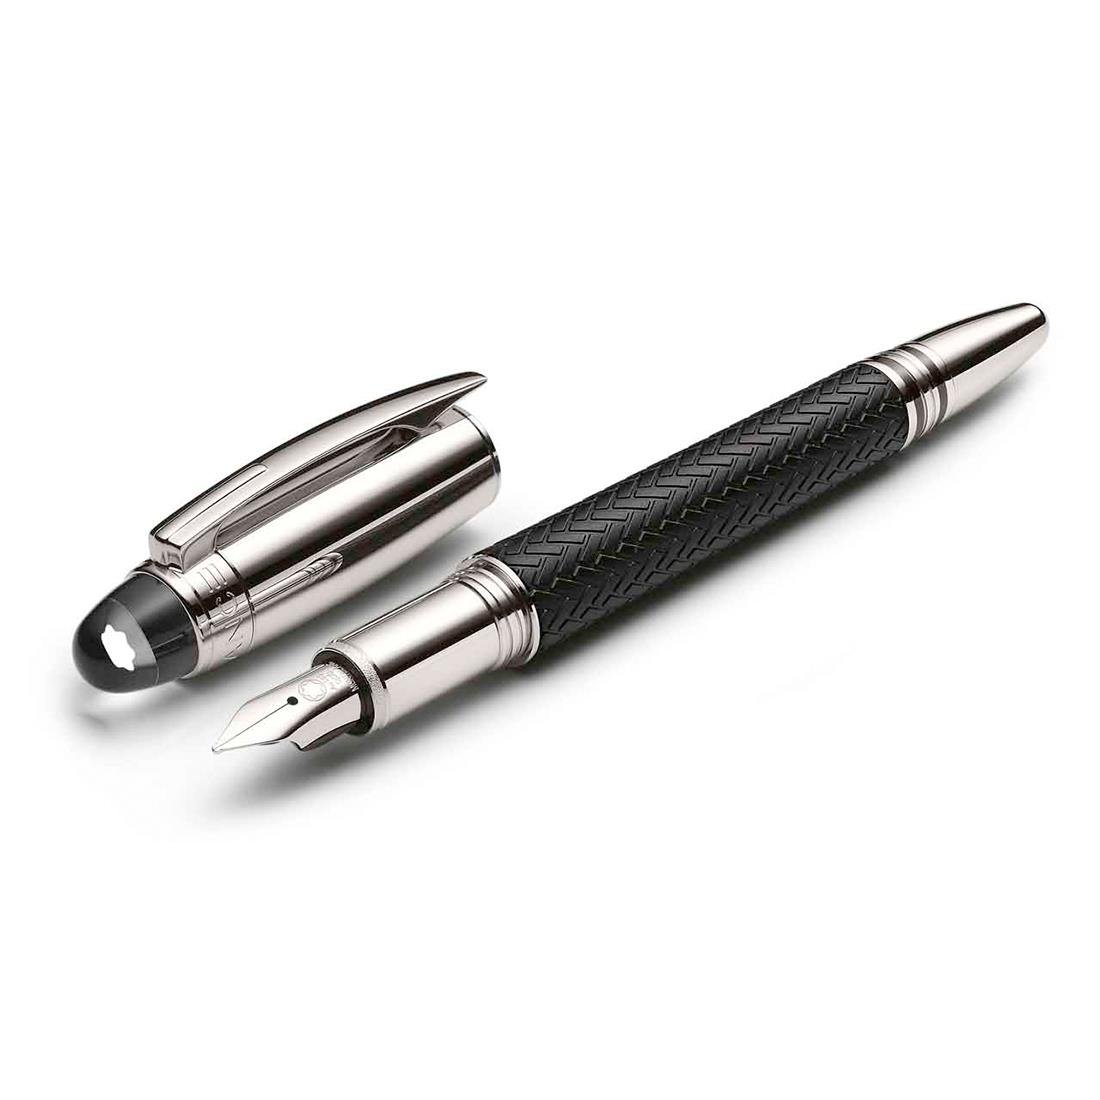 MONTBLANC FOR BMW FOUNTAINPEN